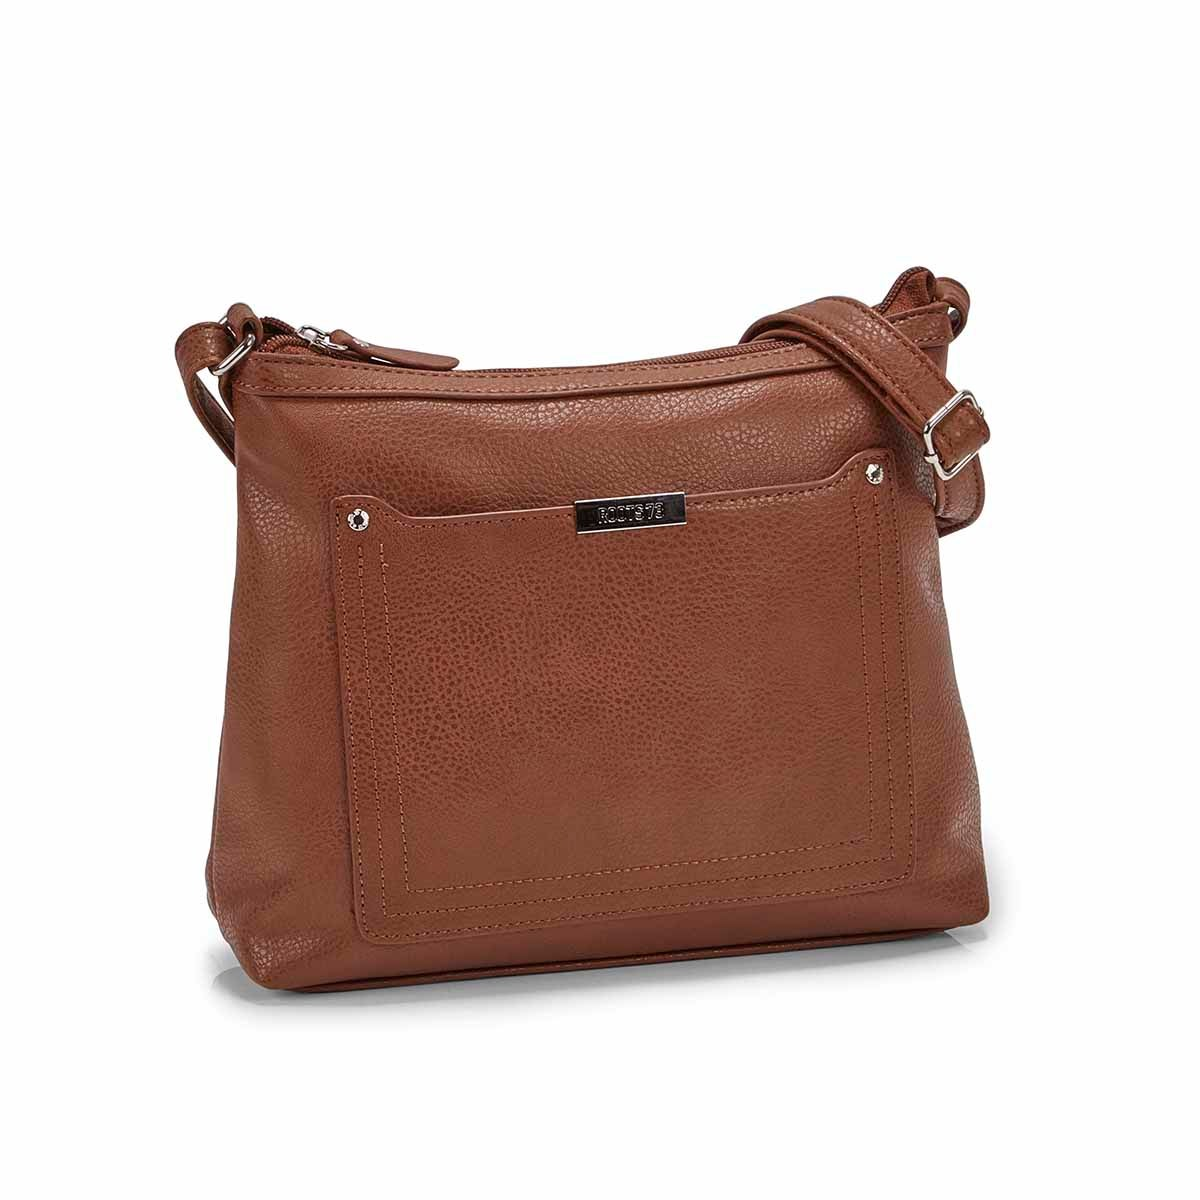 Women's R5438 cognac stitched pocket crossbody